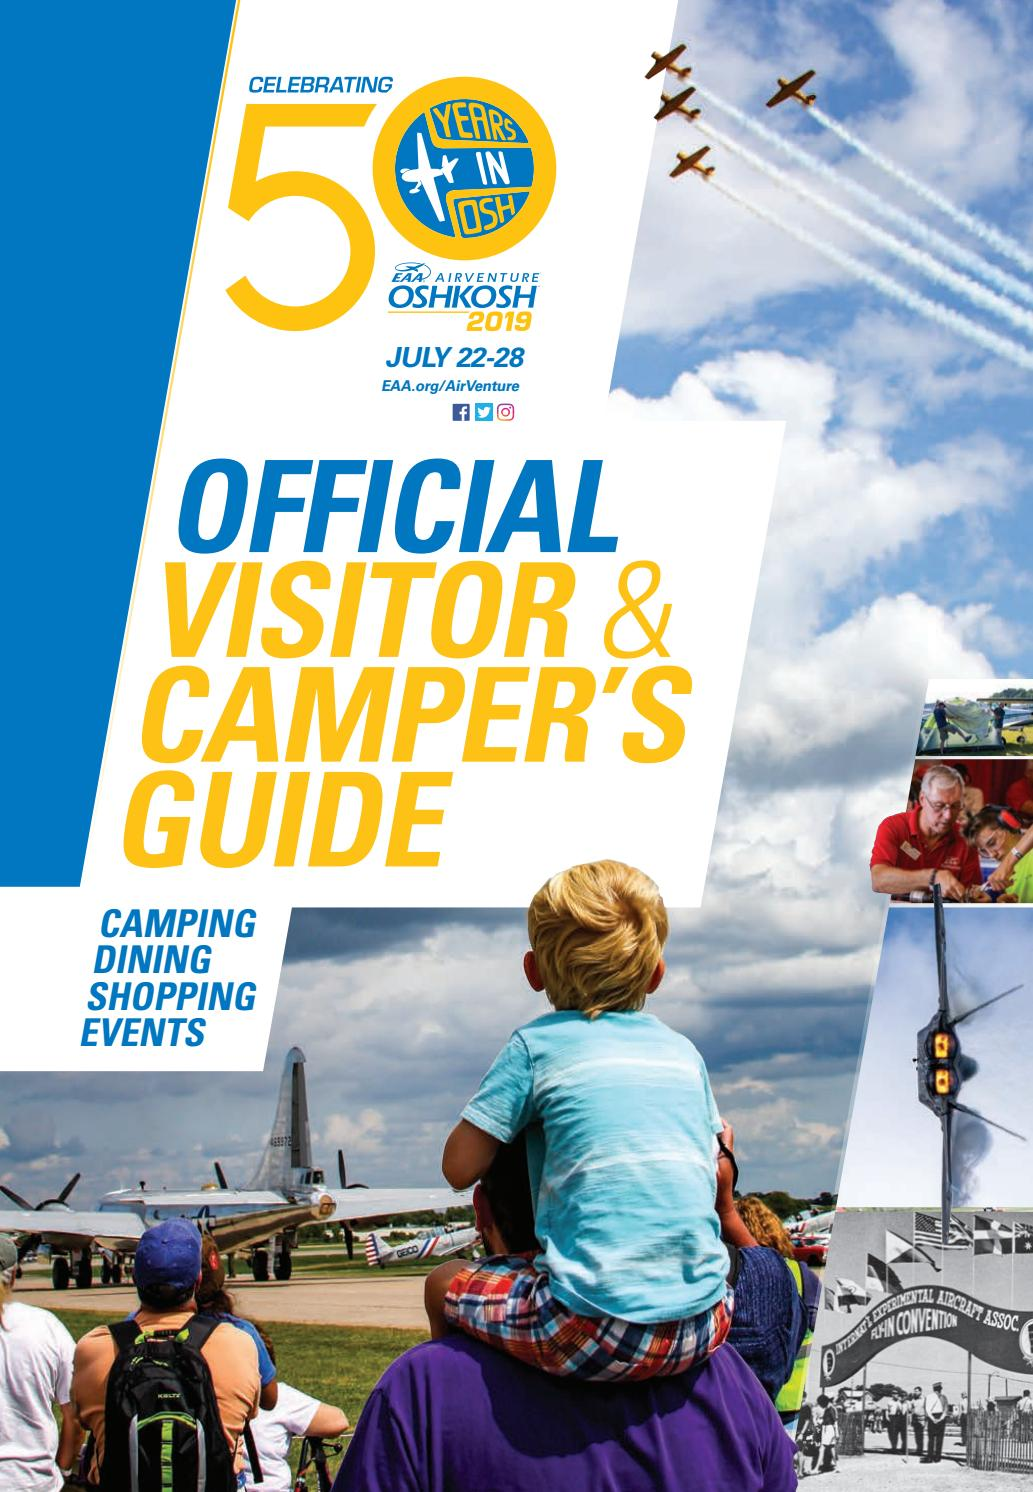 Official Visitor and Camper's Guide - AirVenture 2019 by EAA